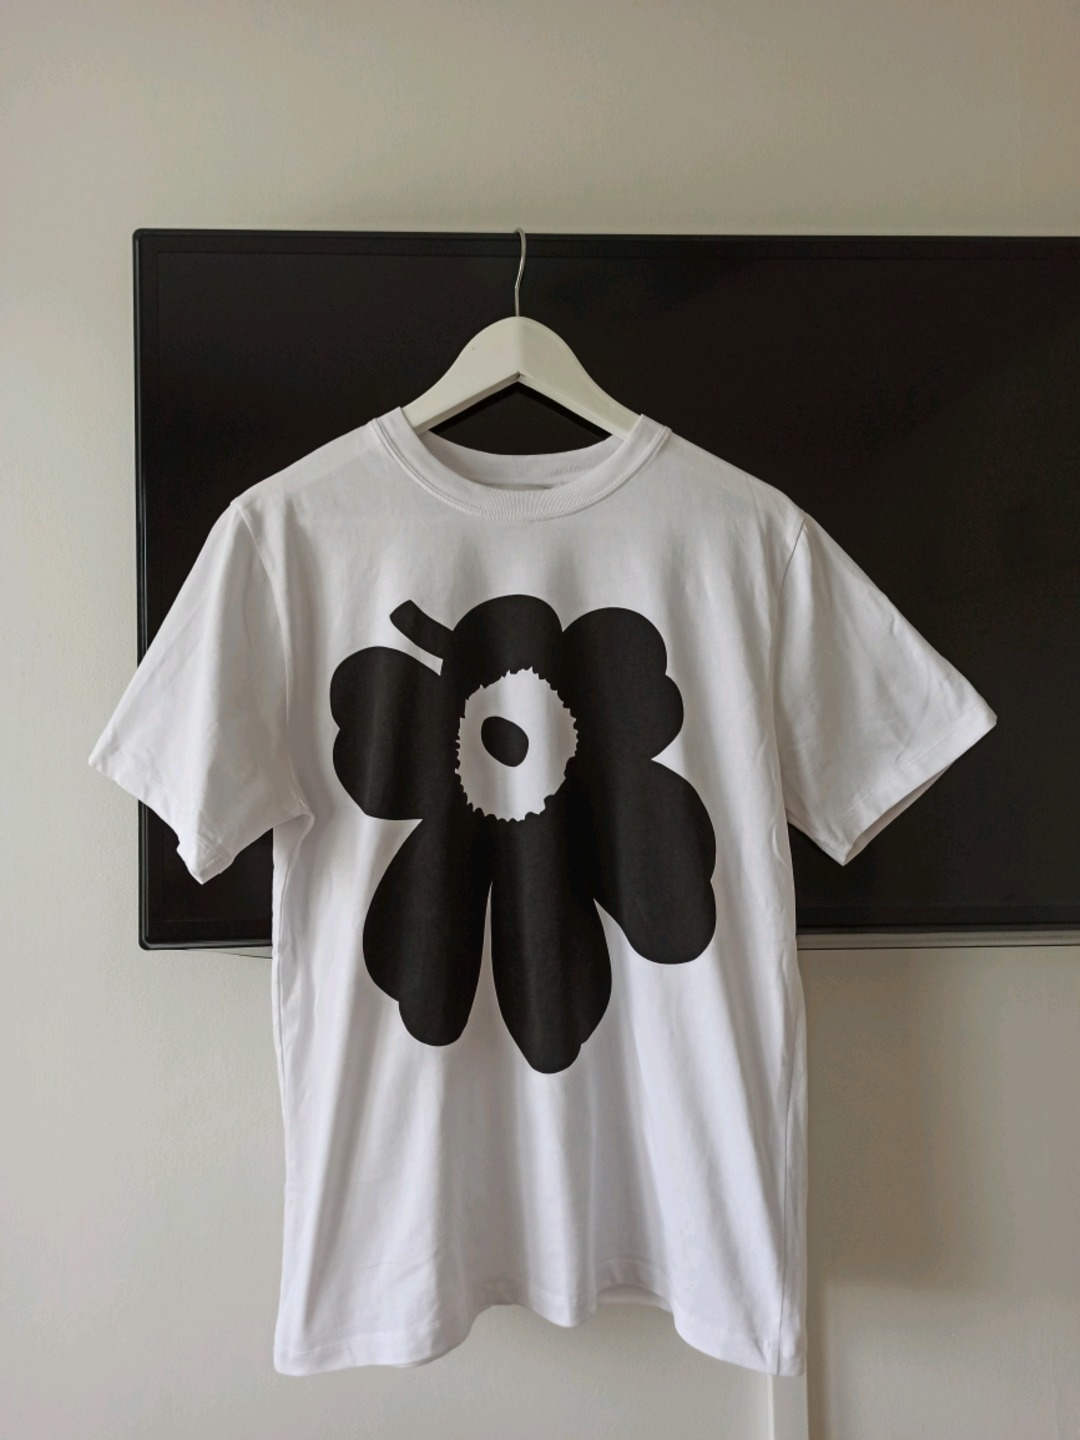 Damen tops & t-shirts - MARIMEKKO photo 1